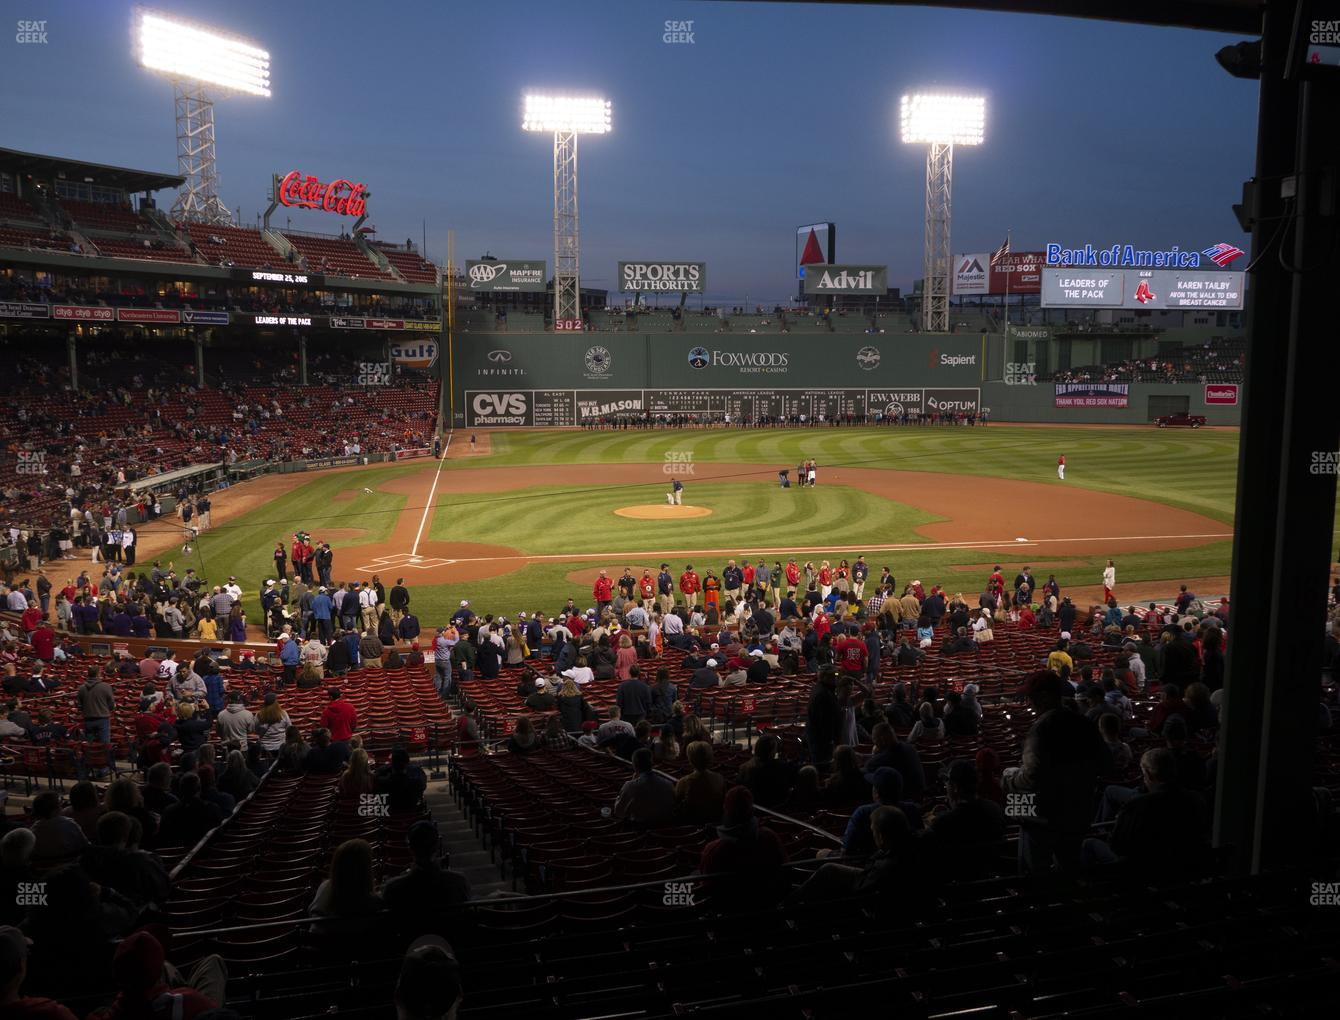 Boston Red Sox at Fenway Park Infield Grandstand 17 View